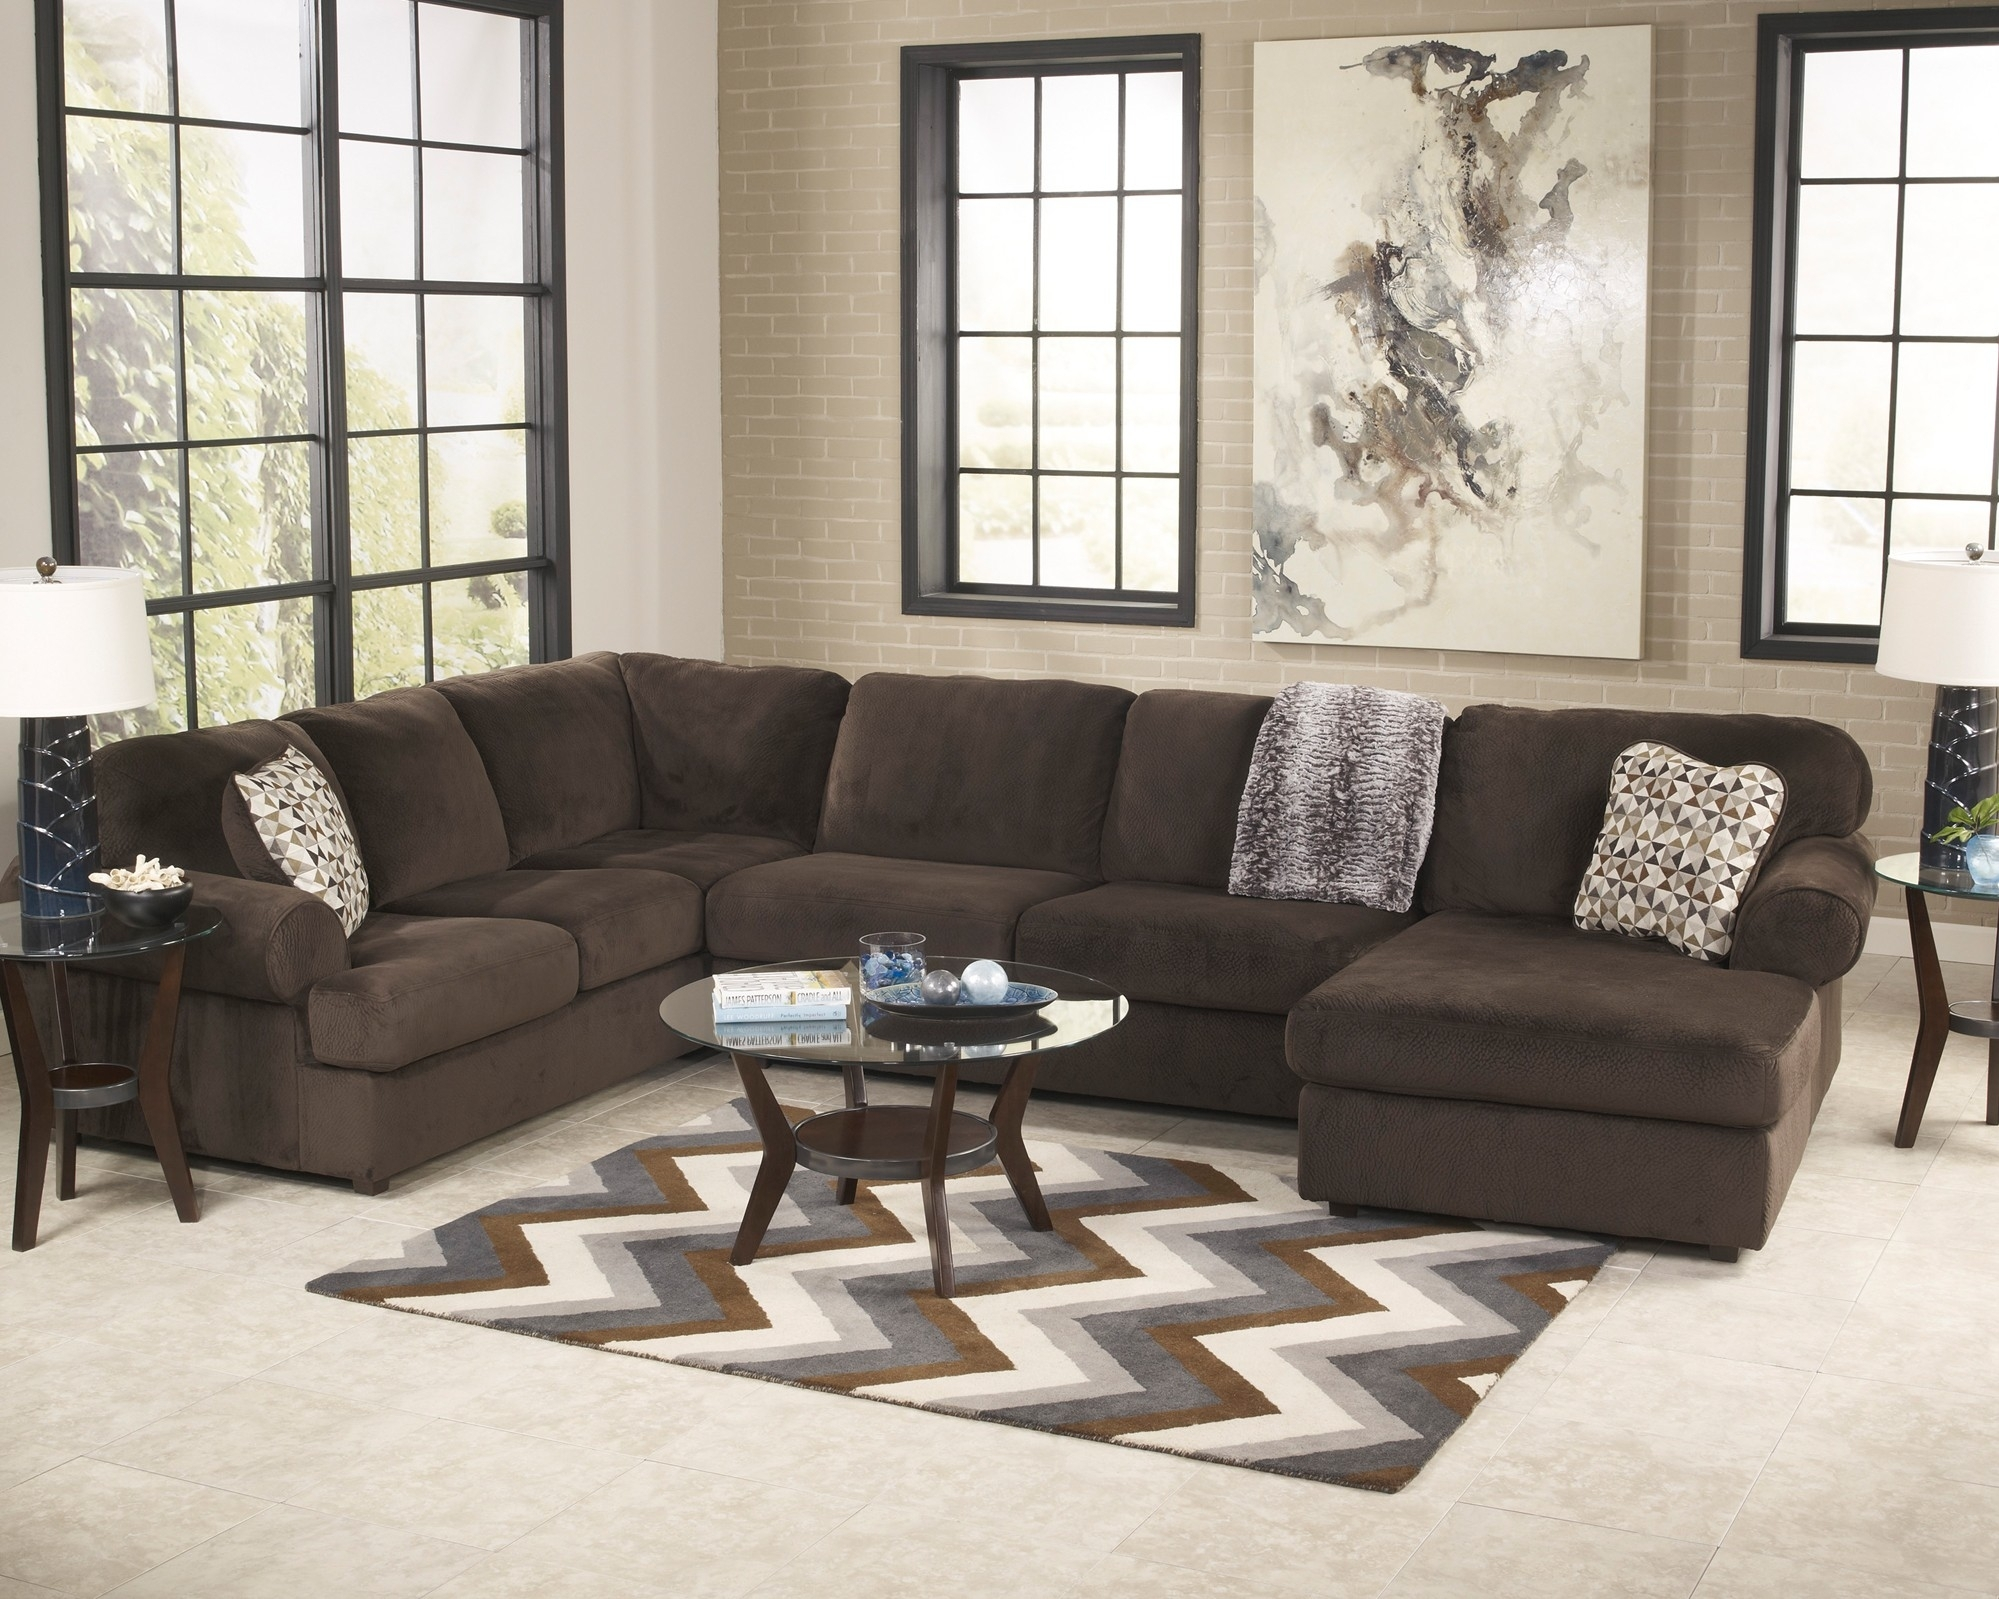 Jessa Place Chocolate 3 Piece Sectional Sofa For $ (View 10 of 10)